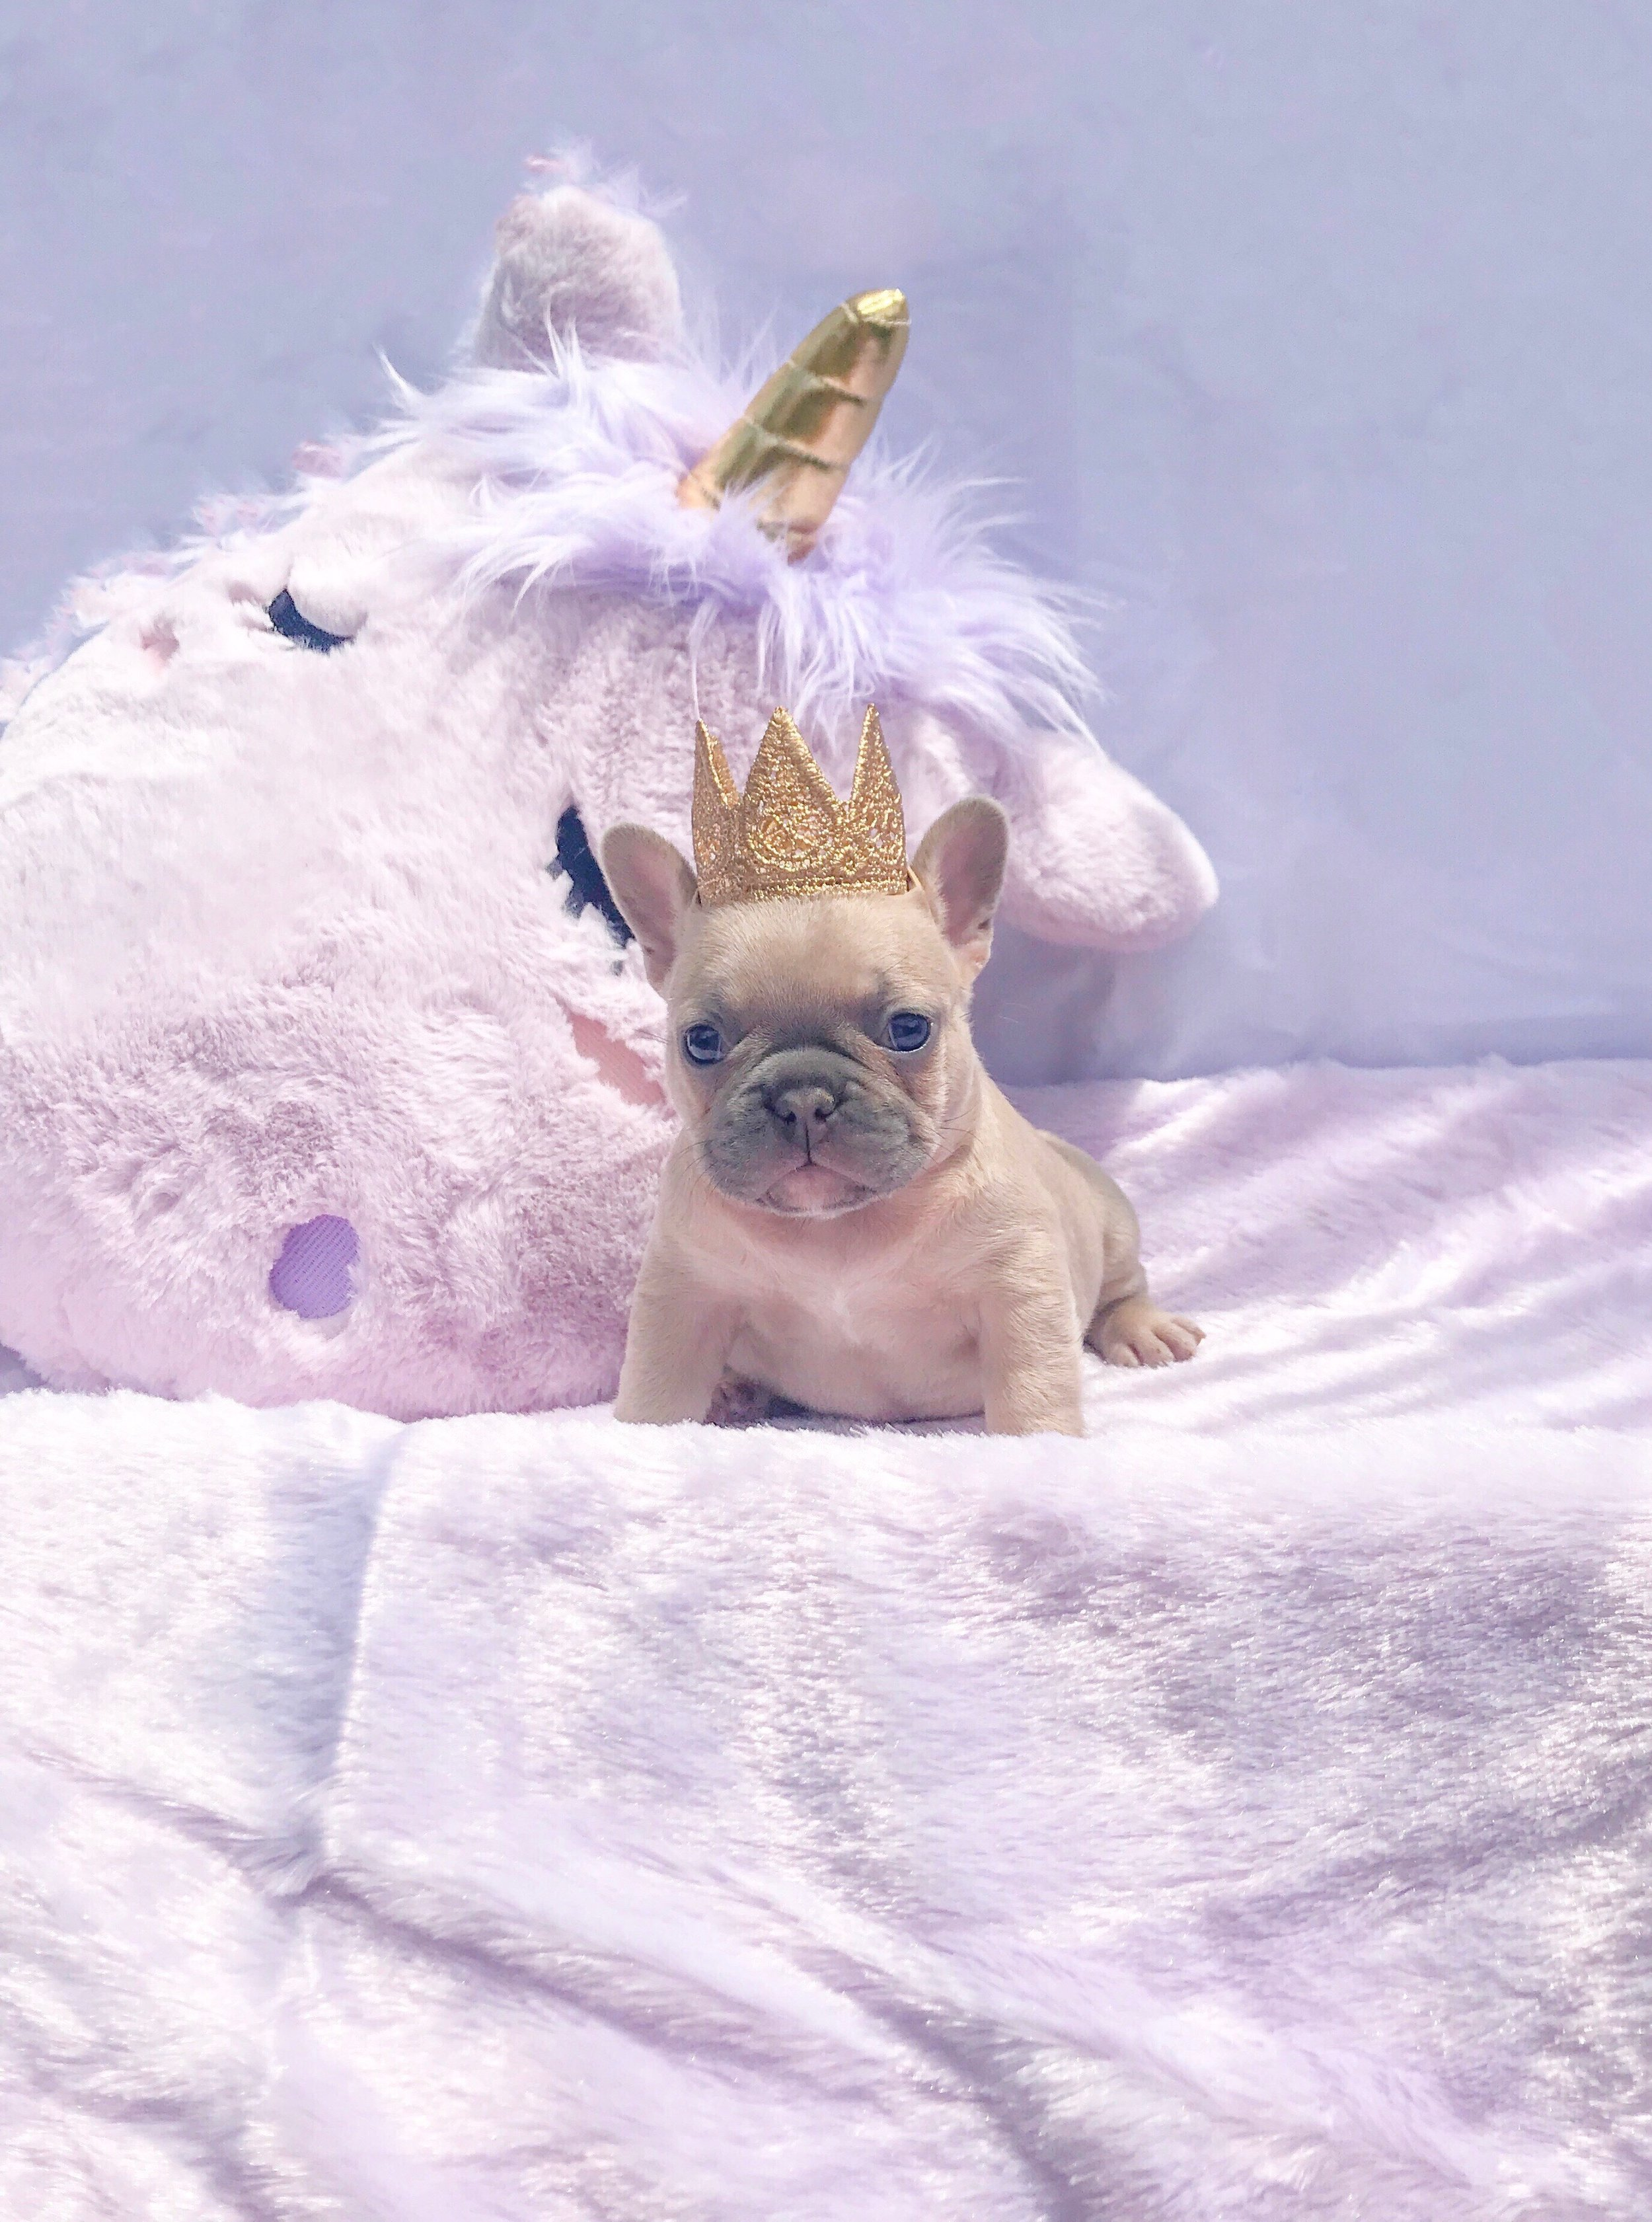 Vixzyn - Where do I begin.. Mercy, Miami Frenchies and their wonderful Ace of Spades. Helped heal a broken heart. I was blessed with the privilege to receive Vixzyn. A perfect addition to our family July 2018. She took us by storm. Captivating our hearts with her spunky, silly and sweet personality. Mercy was always available to answer my many questions at any hour. She is extremely loving and knowledgeable and shows great passion for the breed. Vixzyn just turned a year now and we still keep in touch me sharing photos of my silly girl and her with beneficial information for things that will benefit maintaining all the best for her. My experience with Miami Frenchie's has been phenomenal! If your looking to add a Frenchie to your home they are definitely #1.-Kristina